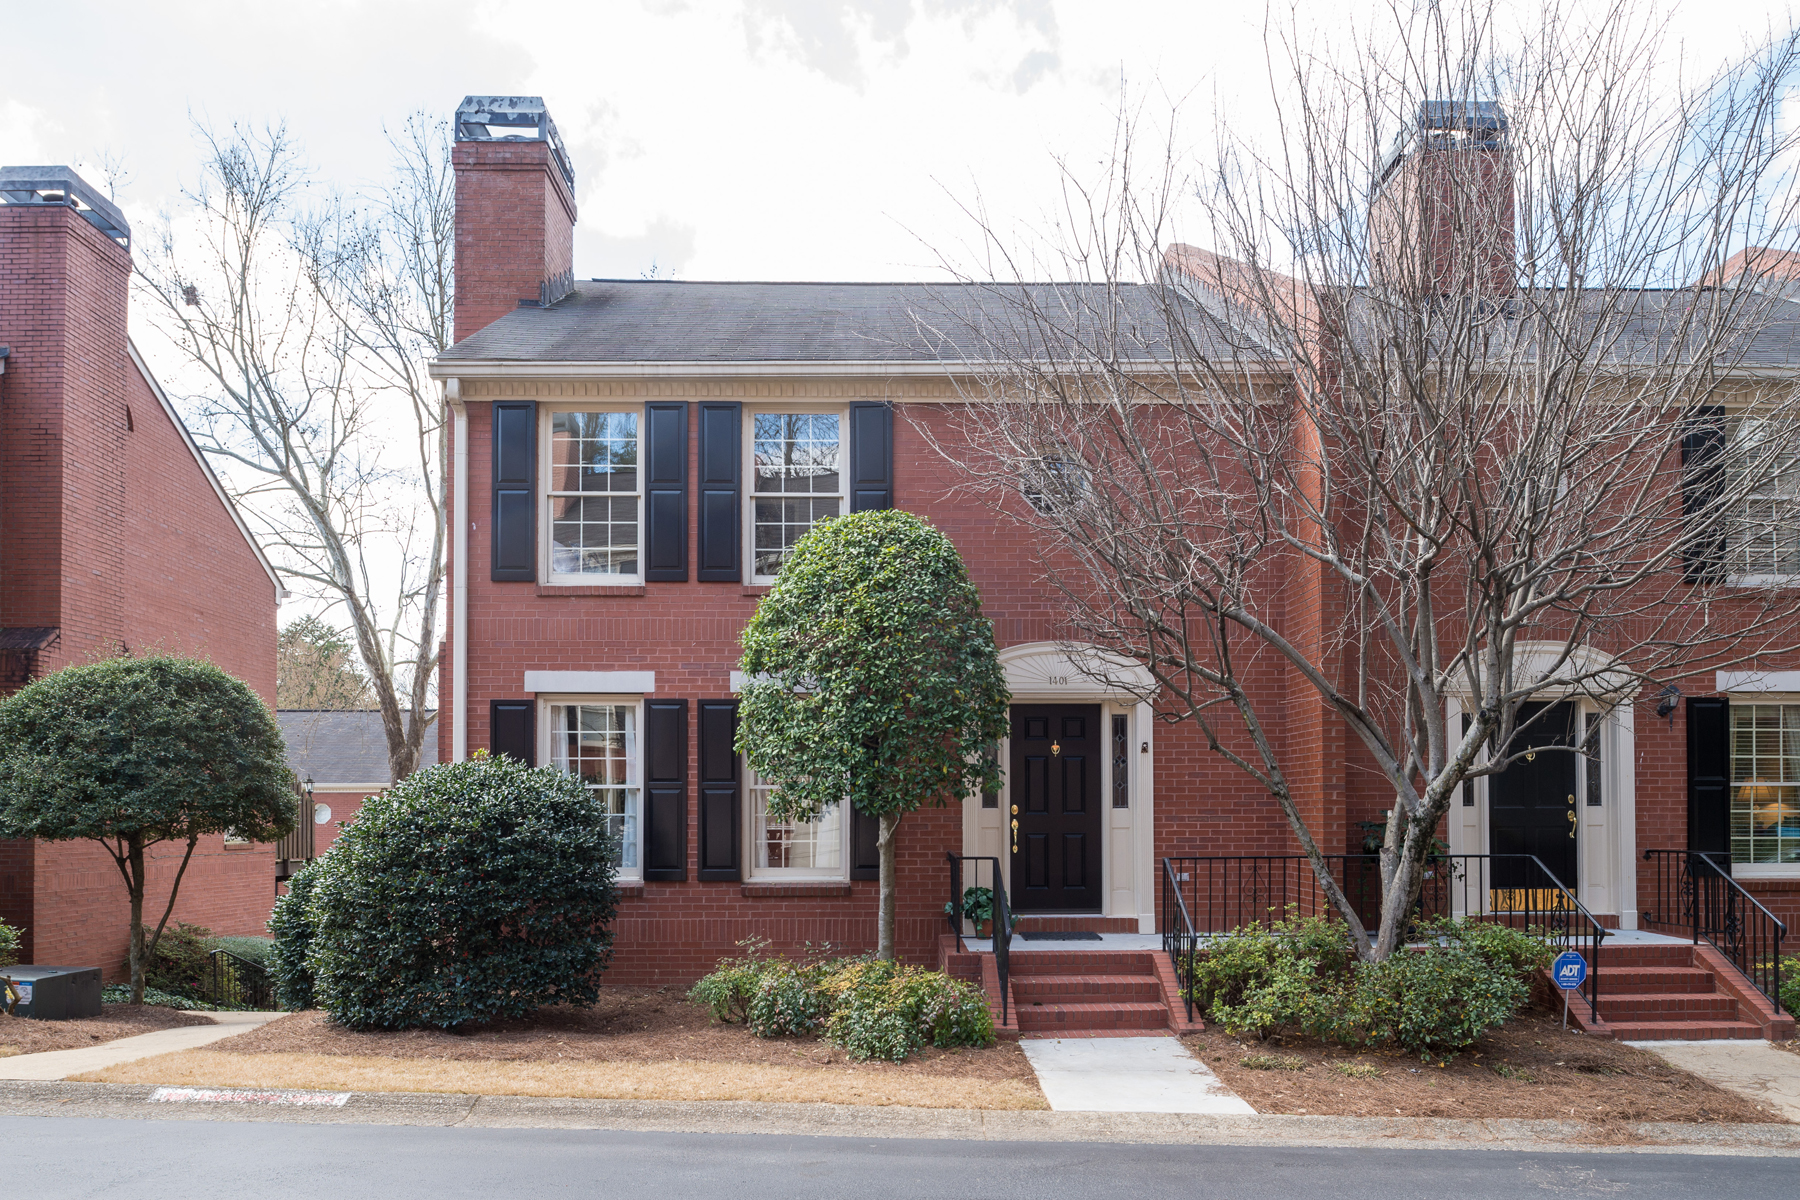 Townhouse for Sale at Completely Renovated Buckhead Townhome 1401 Defoors Mill Drive NW Atlanta, Georgia, 30318 United States